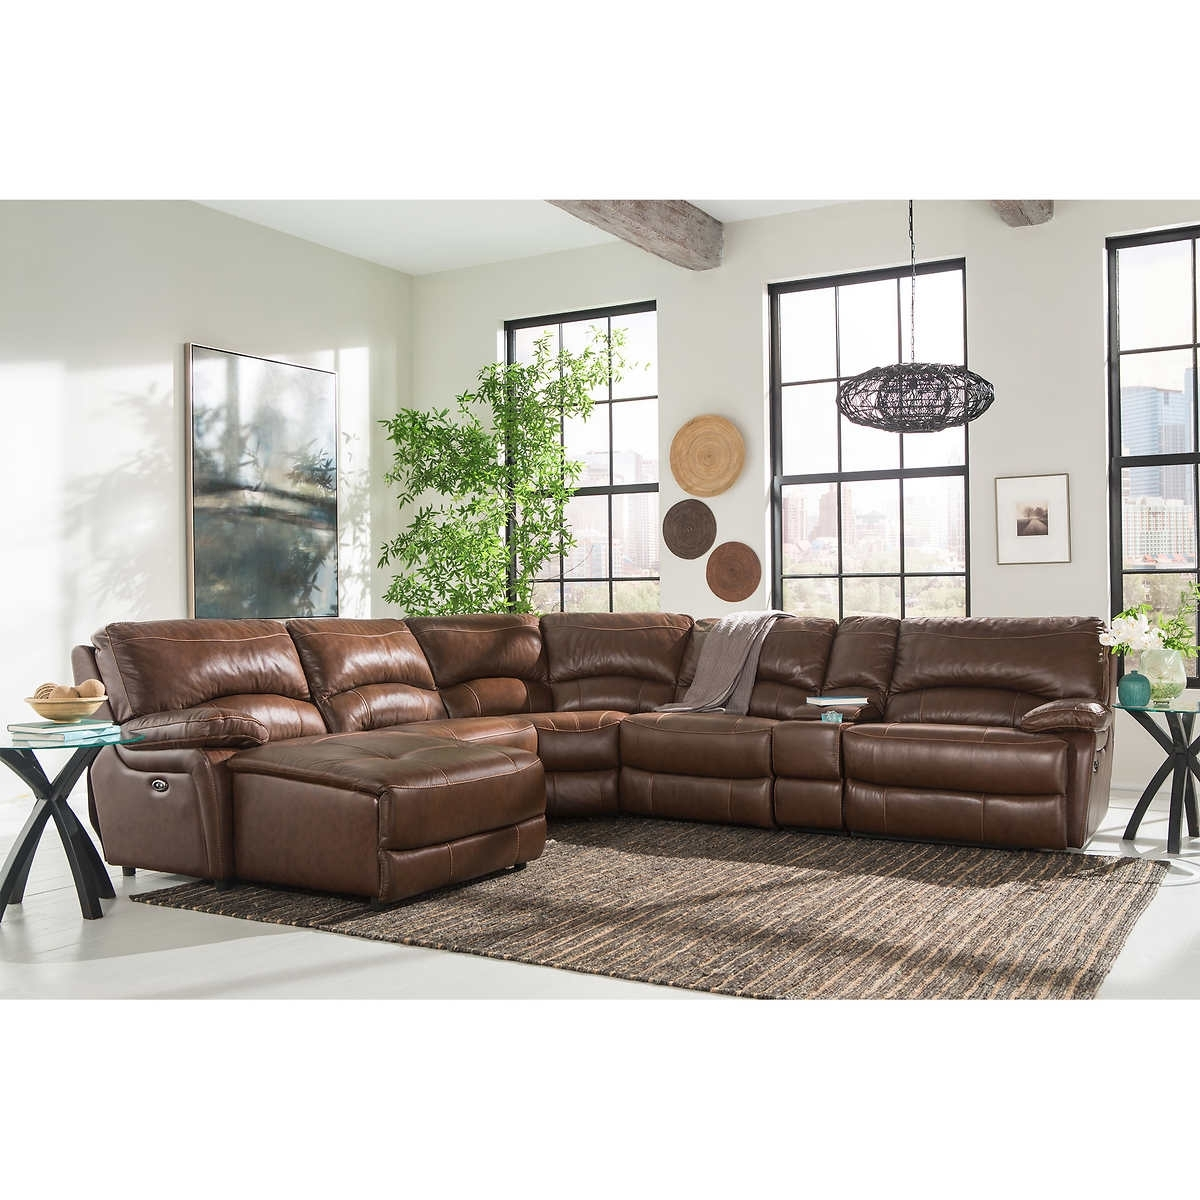 6 Piece Leather Sectional Sofas Intended For Preferred Inspirational 6 Piece Leather Sectional Sofa 56 For With 6 Piece (Gallery 4 of 20)